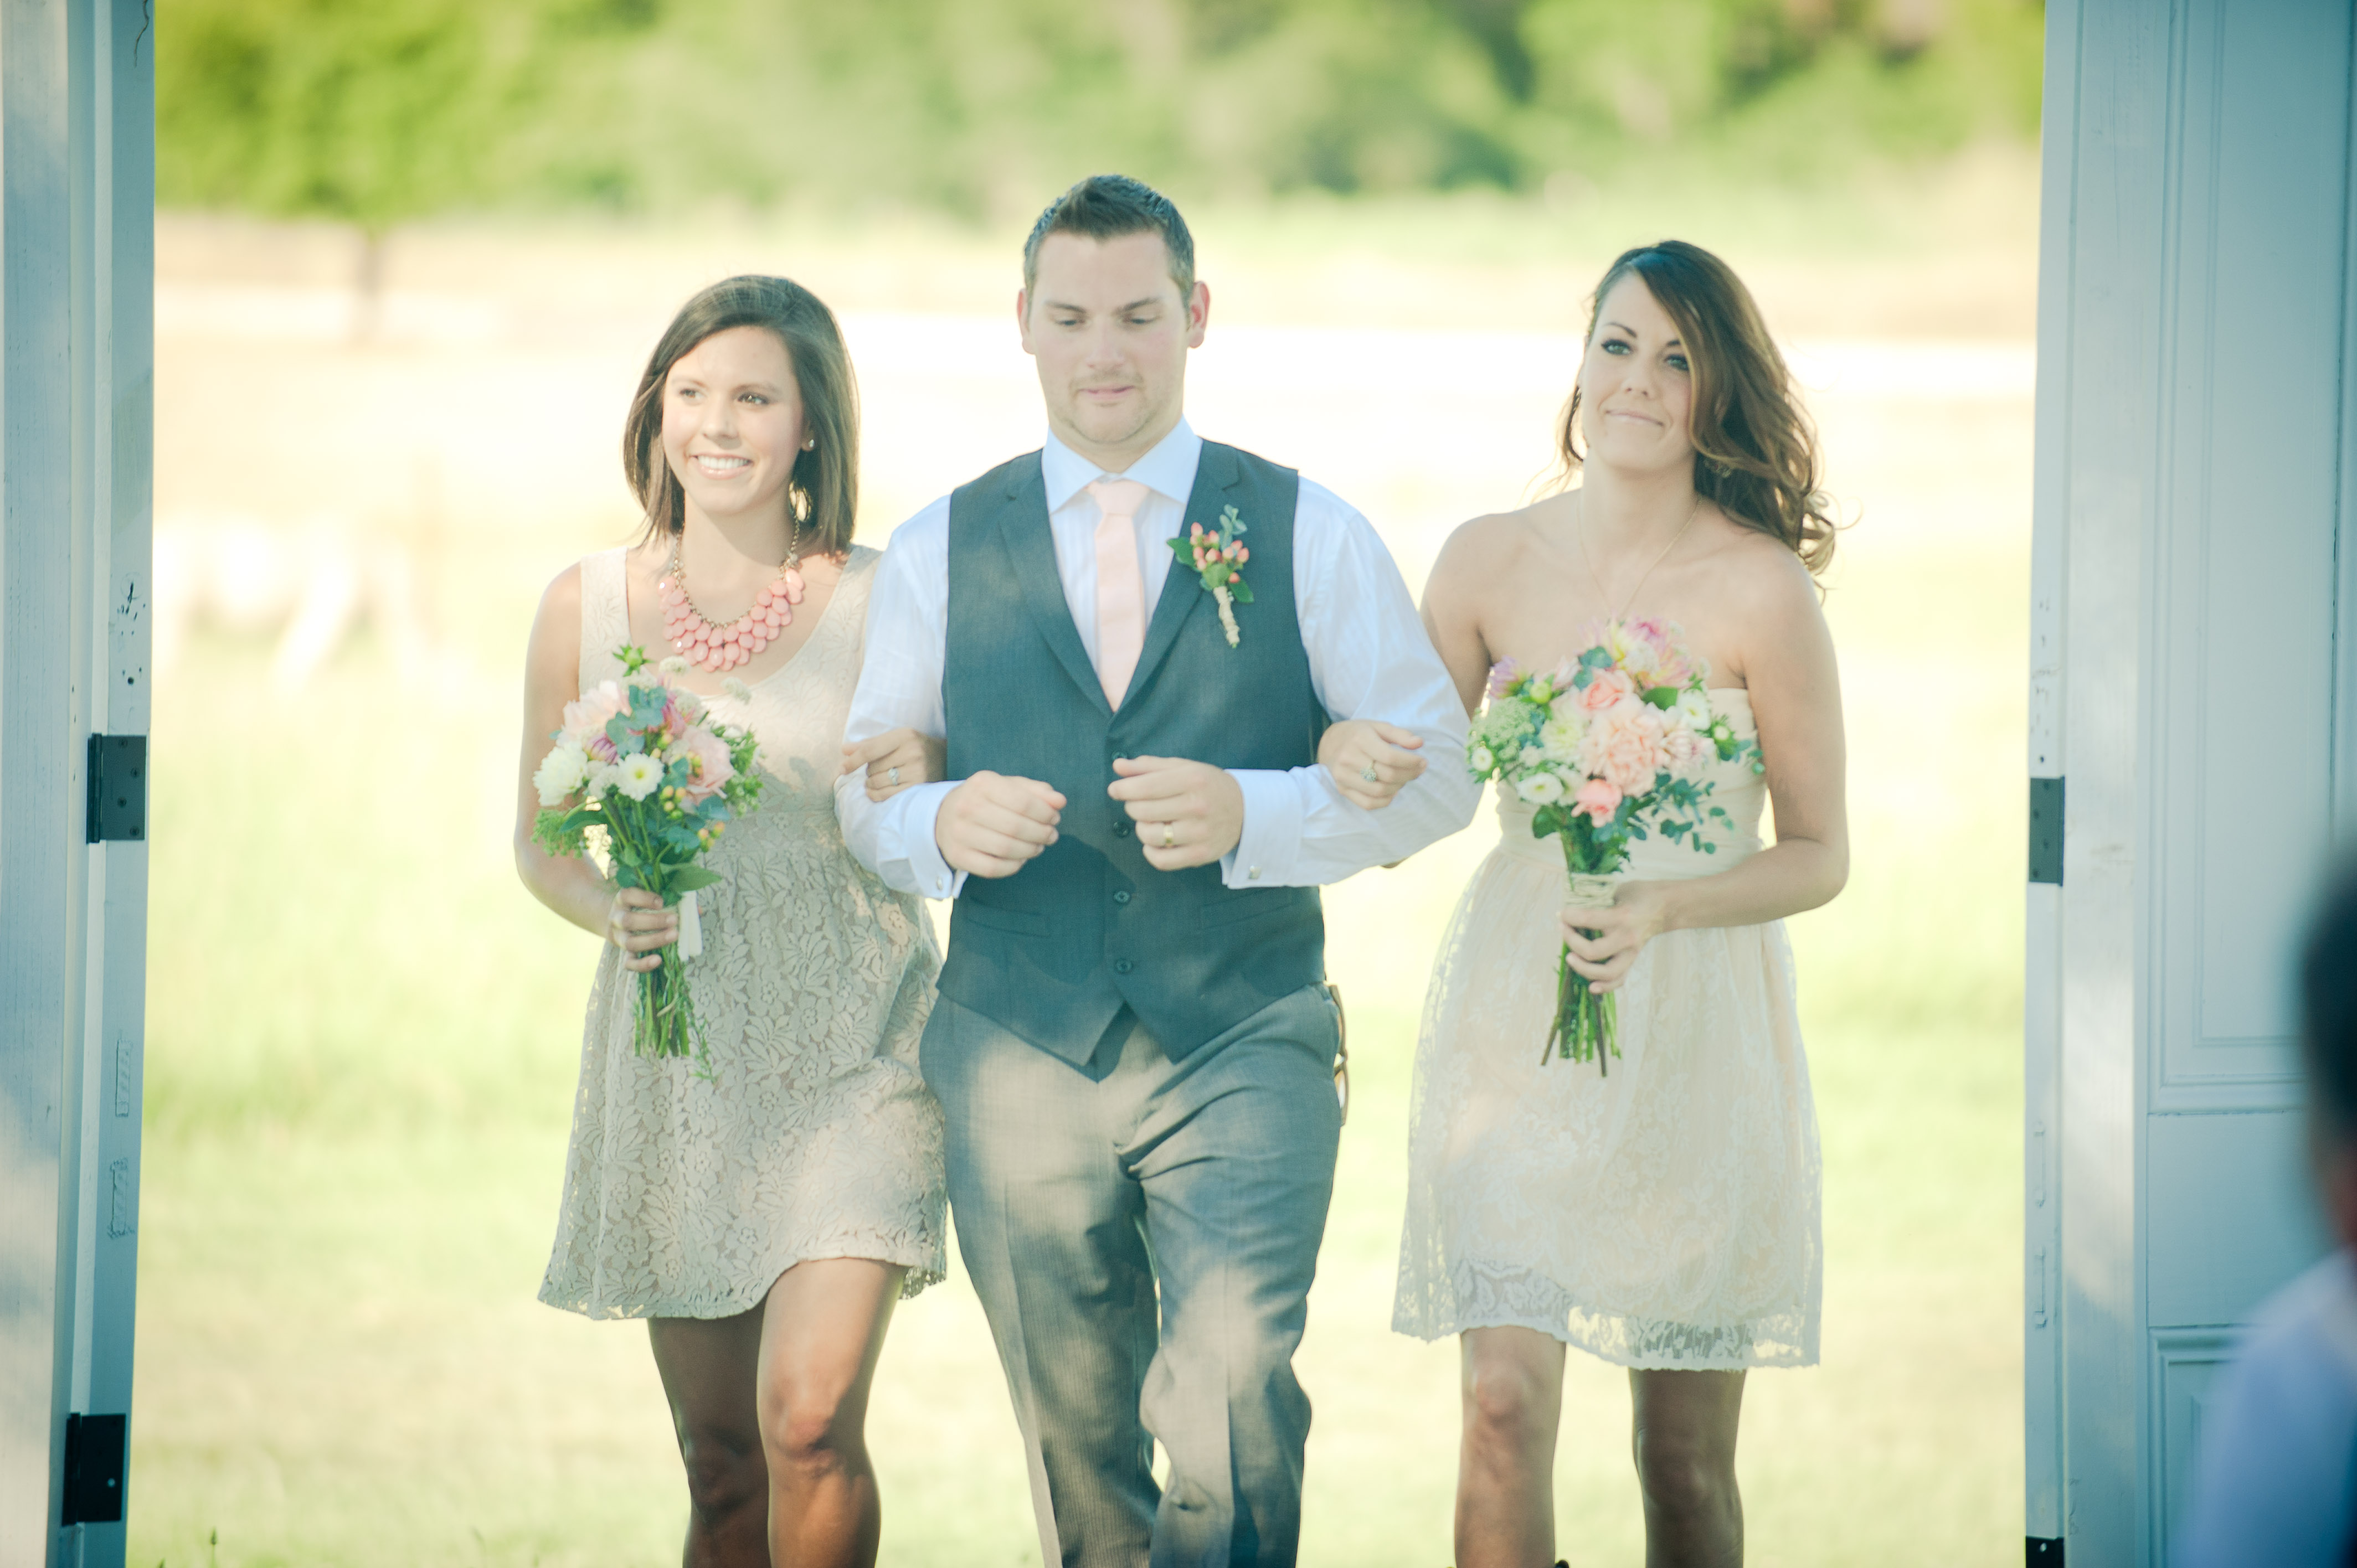 Country Chic Wedding Attire For Guests: Wedding dress code archives ...